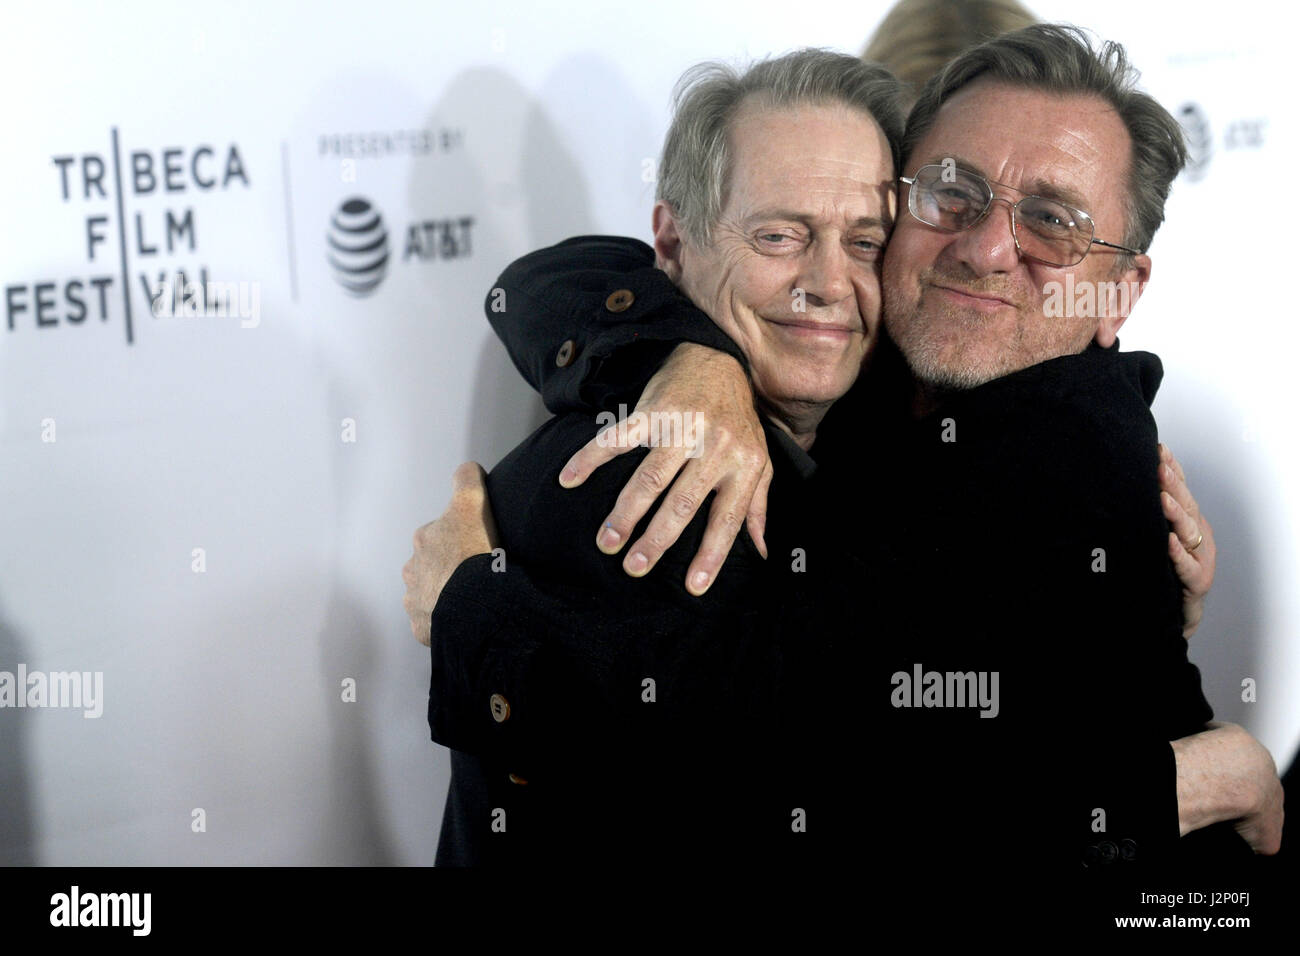 New York City. 28th Apr, 2017. Steve Buscemi and Tim Roth attend the 'Reservoir Dogs' 25th Anniversary Screening - Stock Image